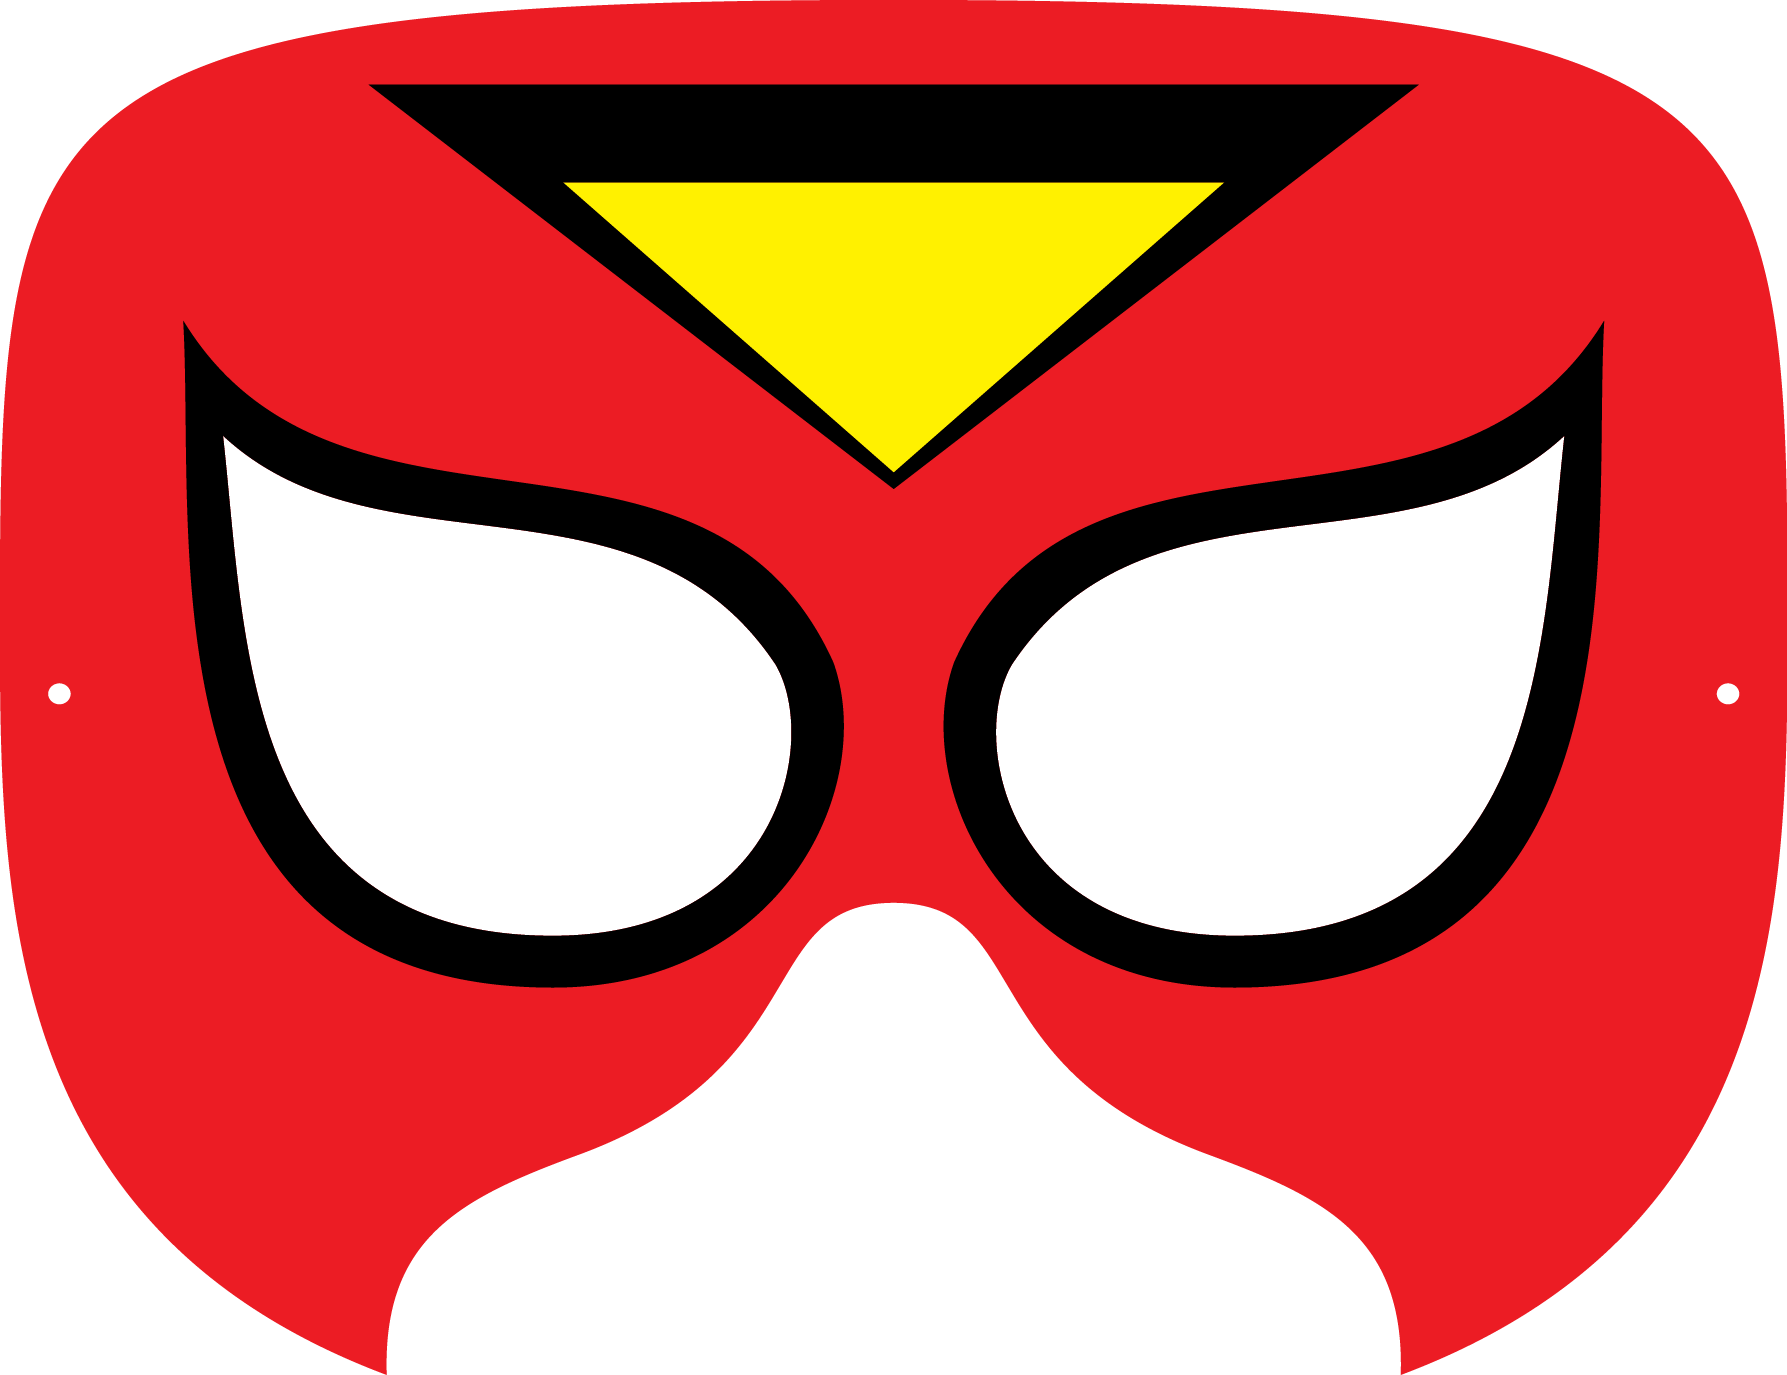 photograph relating to Free Printable Superhero Mask named Superhero Mask Template Cost-free obtain most straightforward Superhero Mask